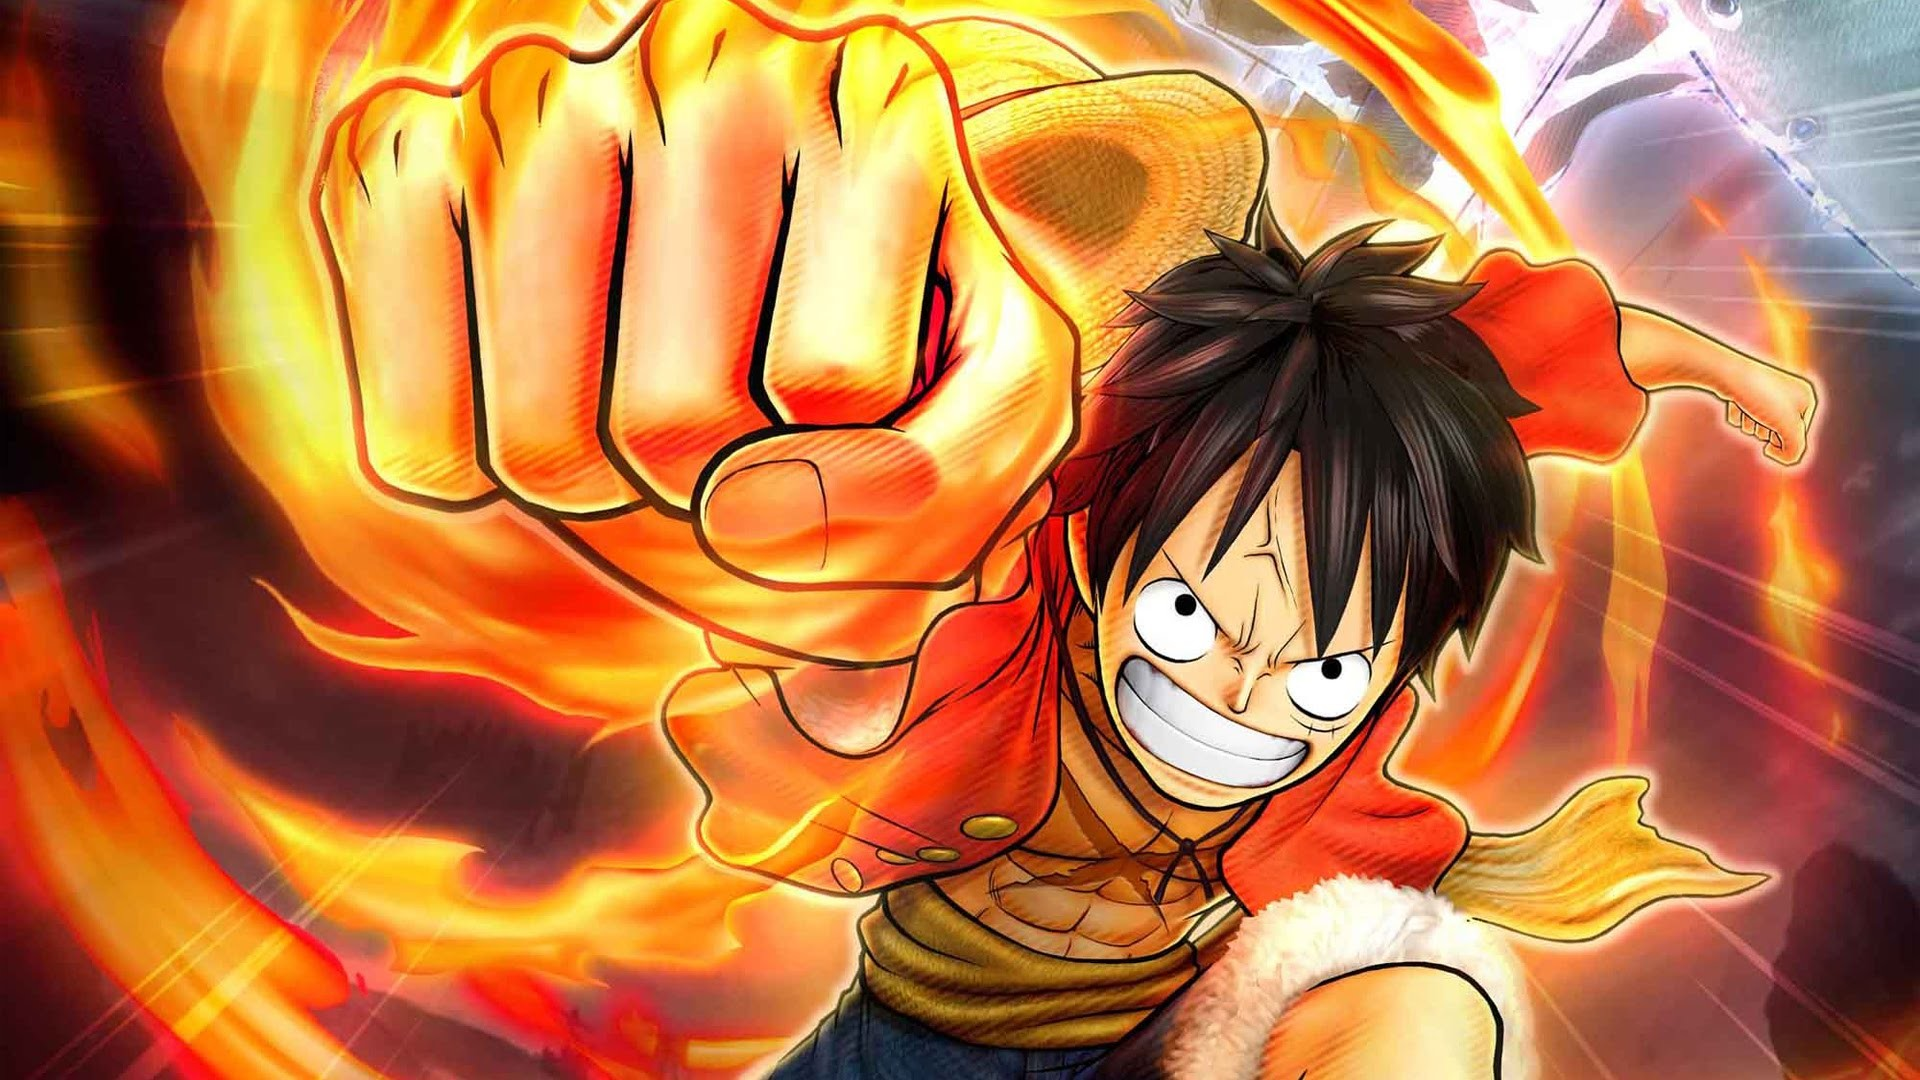 Epic One Piece Wallpaper Hd Posted By Ryan Sellers